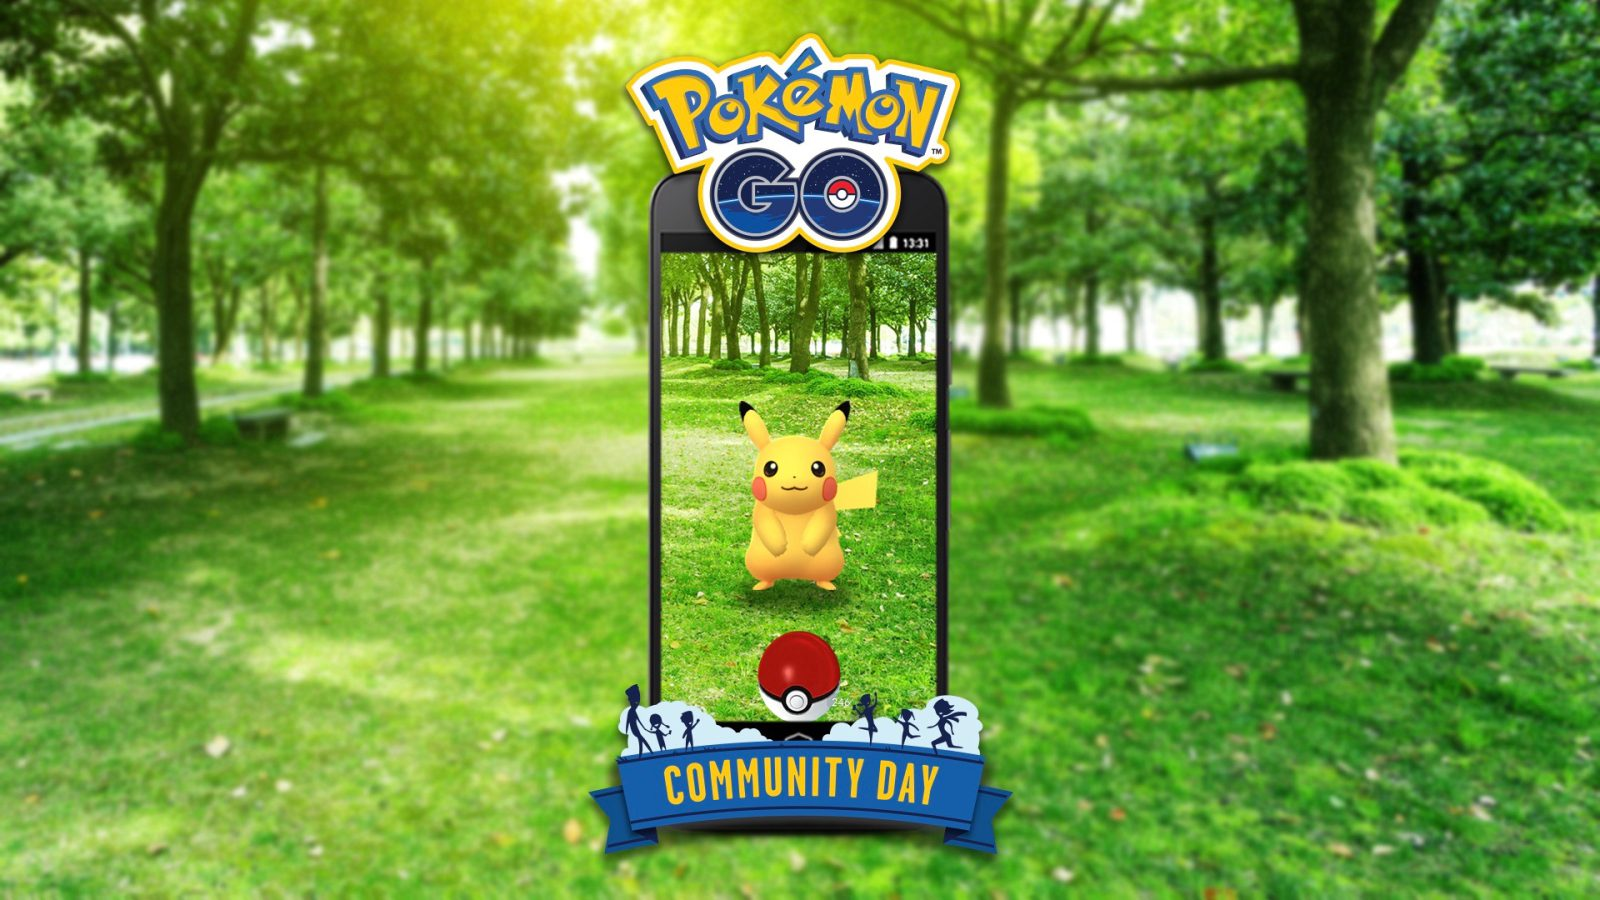 Pokémon GO launching monthly Community Day for Trainers pokemon-go-launching-monthly-community-day-for-trainers